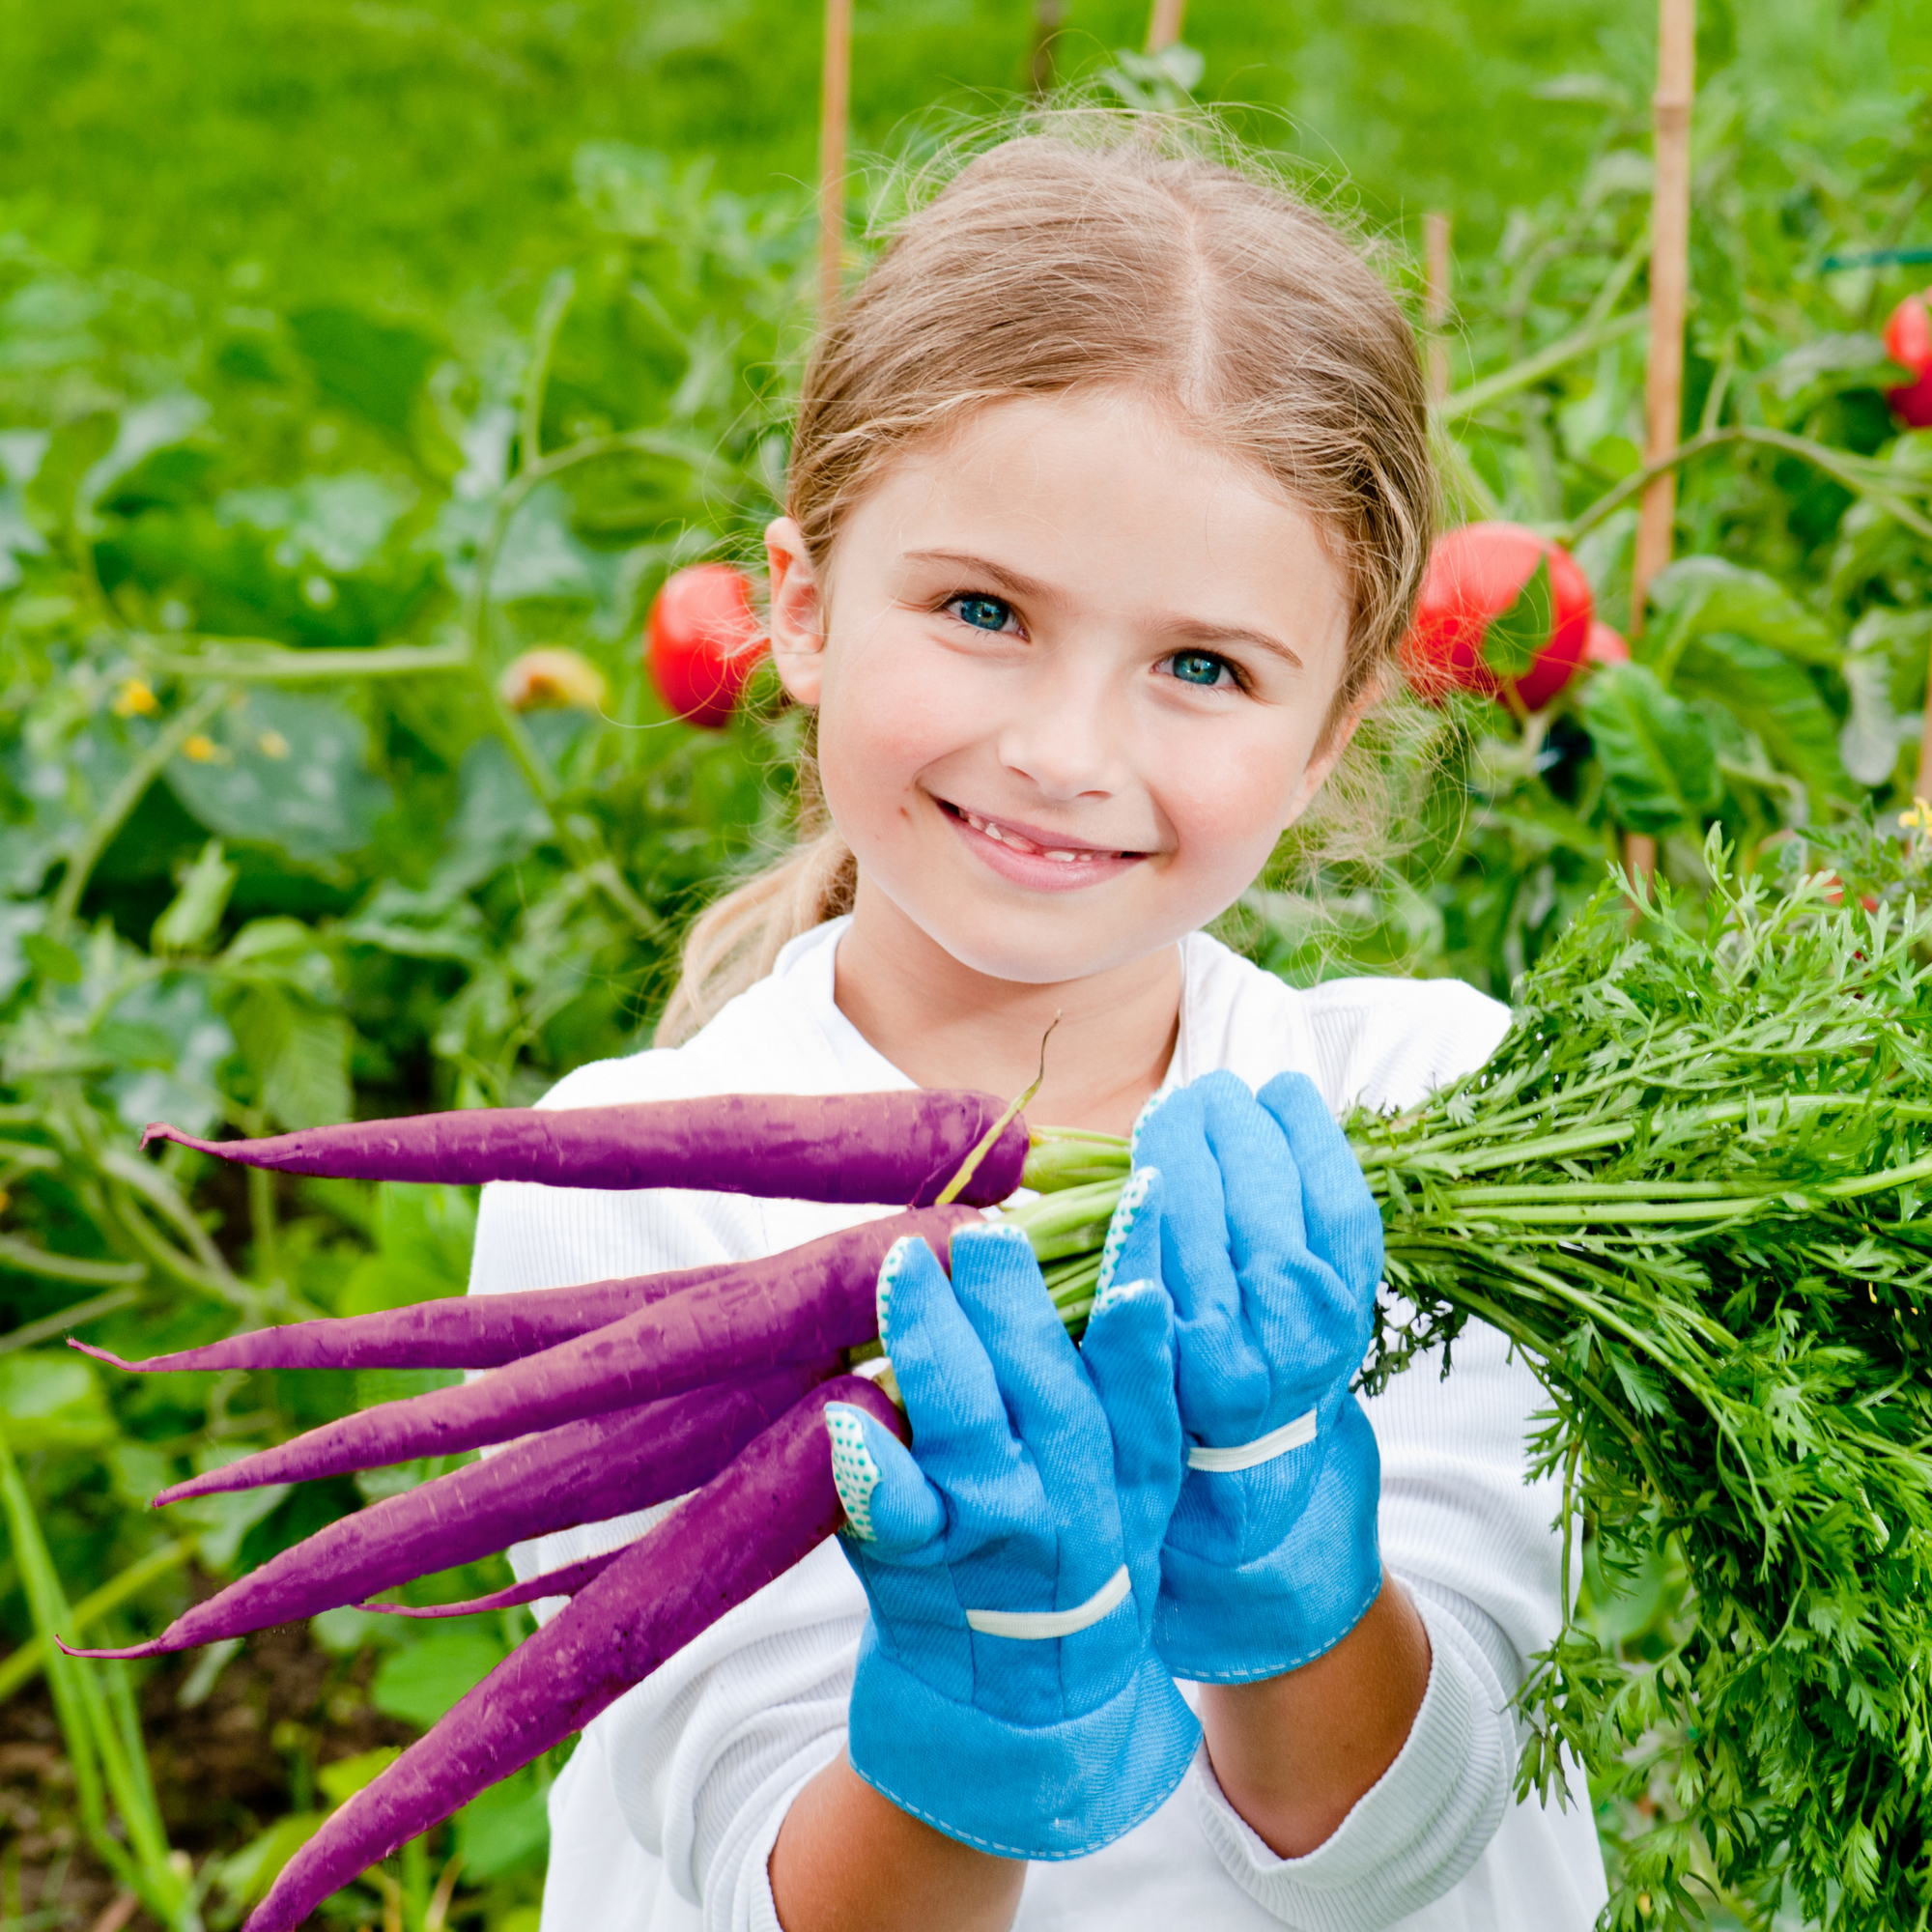 Fun Activities to Engage Kids in Gardening